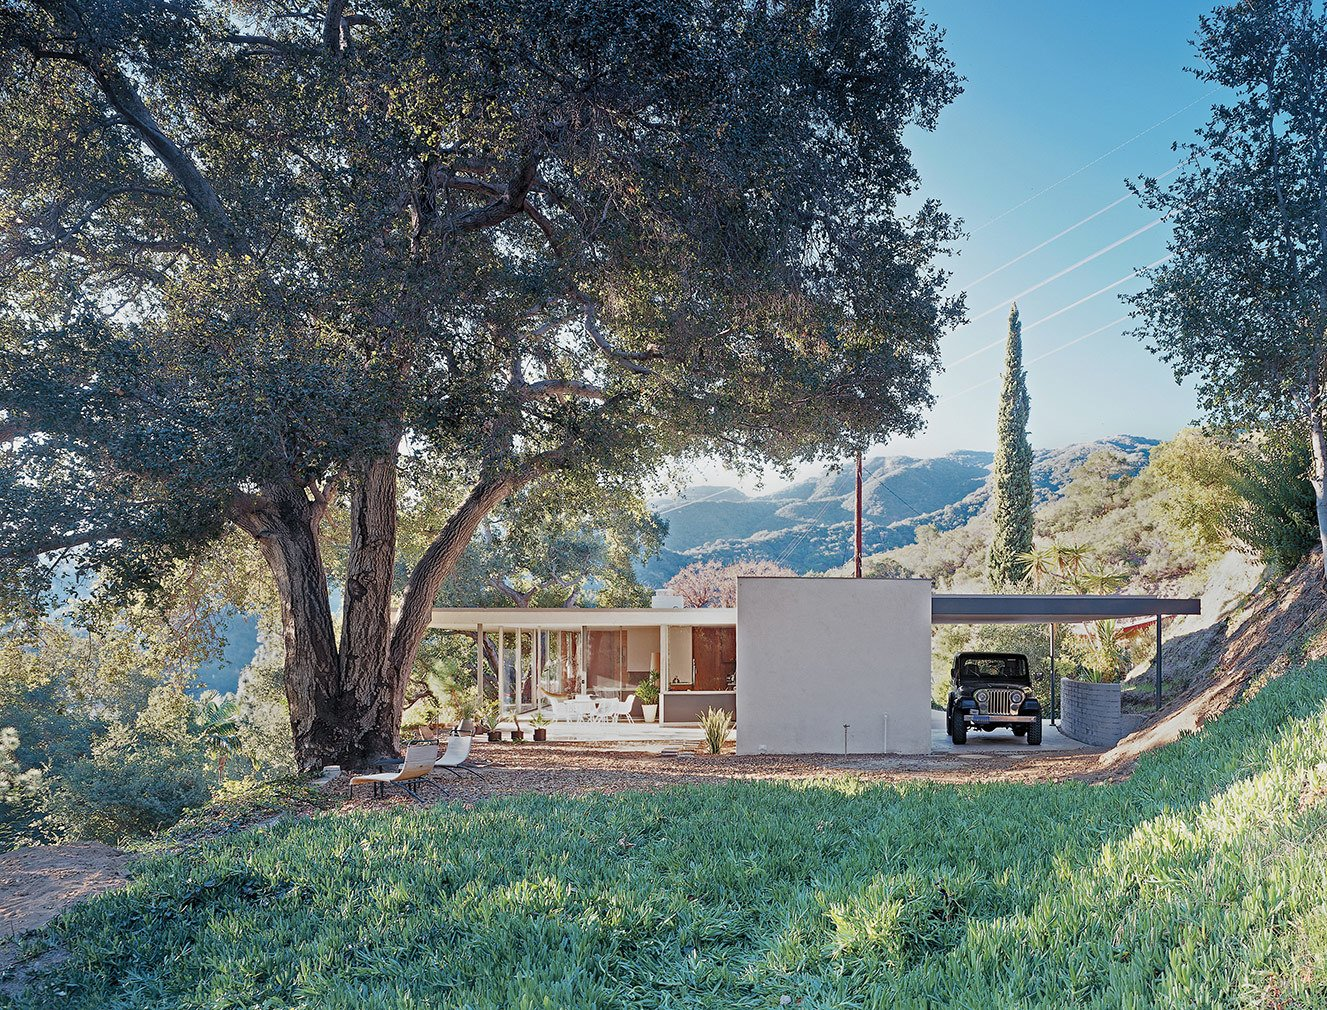 """The half-acre lot backs up to the <span style=""""font-family: Theinhardt, -apple-system, BlinkMacSystemFont, &quot;Segoe UI&quot;, Roboto, Oxygen-Sans, Ubuntu, Cantarell, &quot;Helvetica Neue&quot;, sans-serif;"""">Verdugo Mountains Open Space Preserve, affording the home complete privacy, as well as the enjoyment of local wildlife and the natural landscape.</span>"""